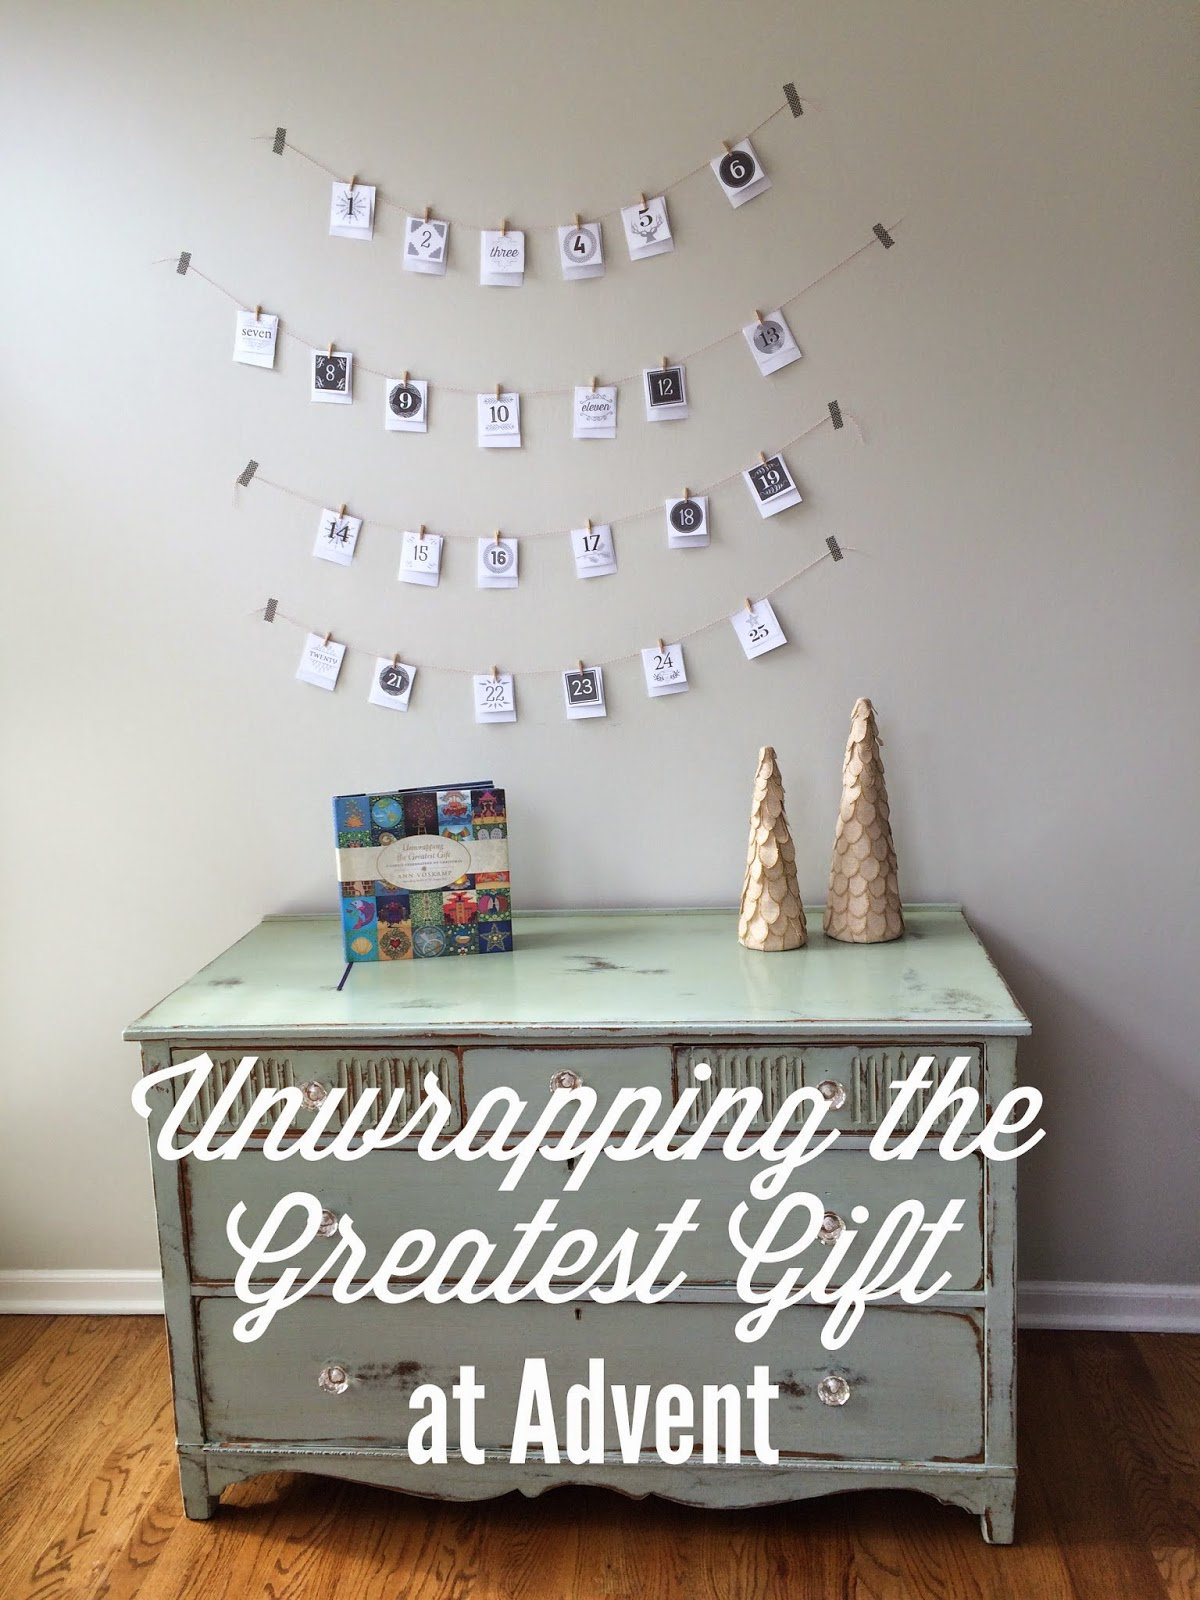 My {Grace Filled} Mess: Unwrapping the Greatest Gift